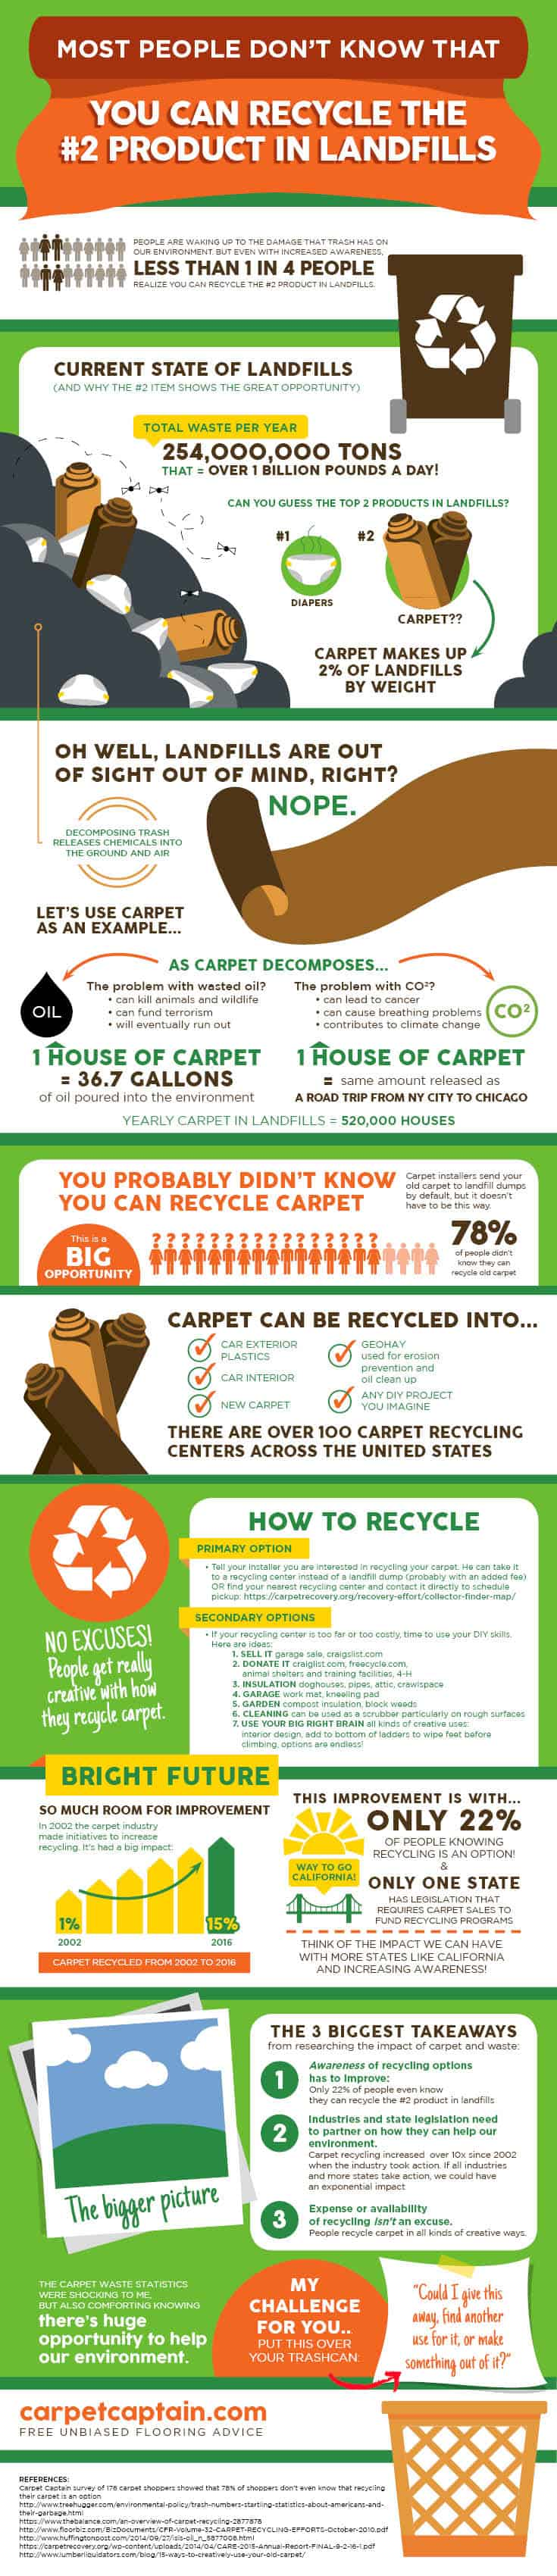 Most people don't know the #2 product in landfills